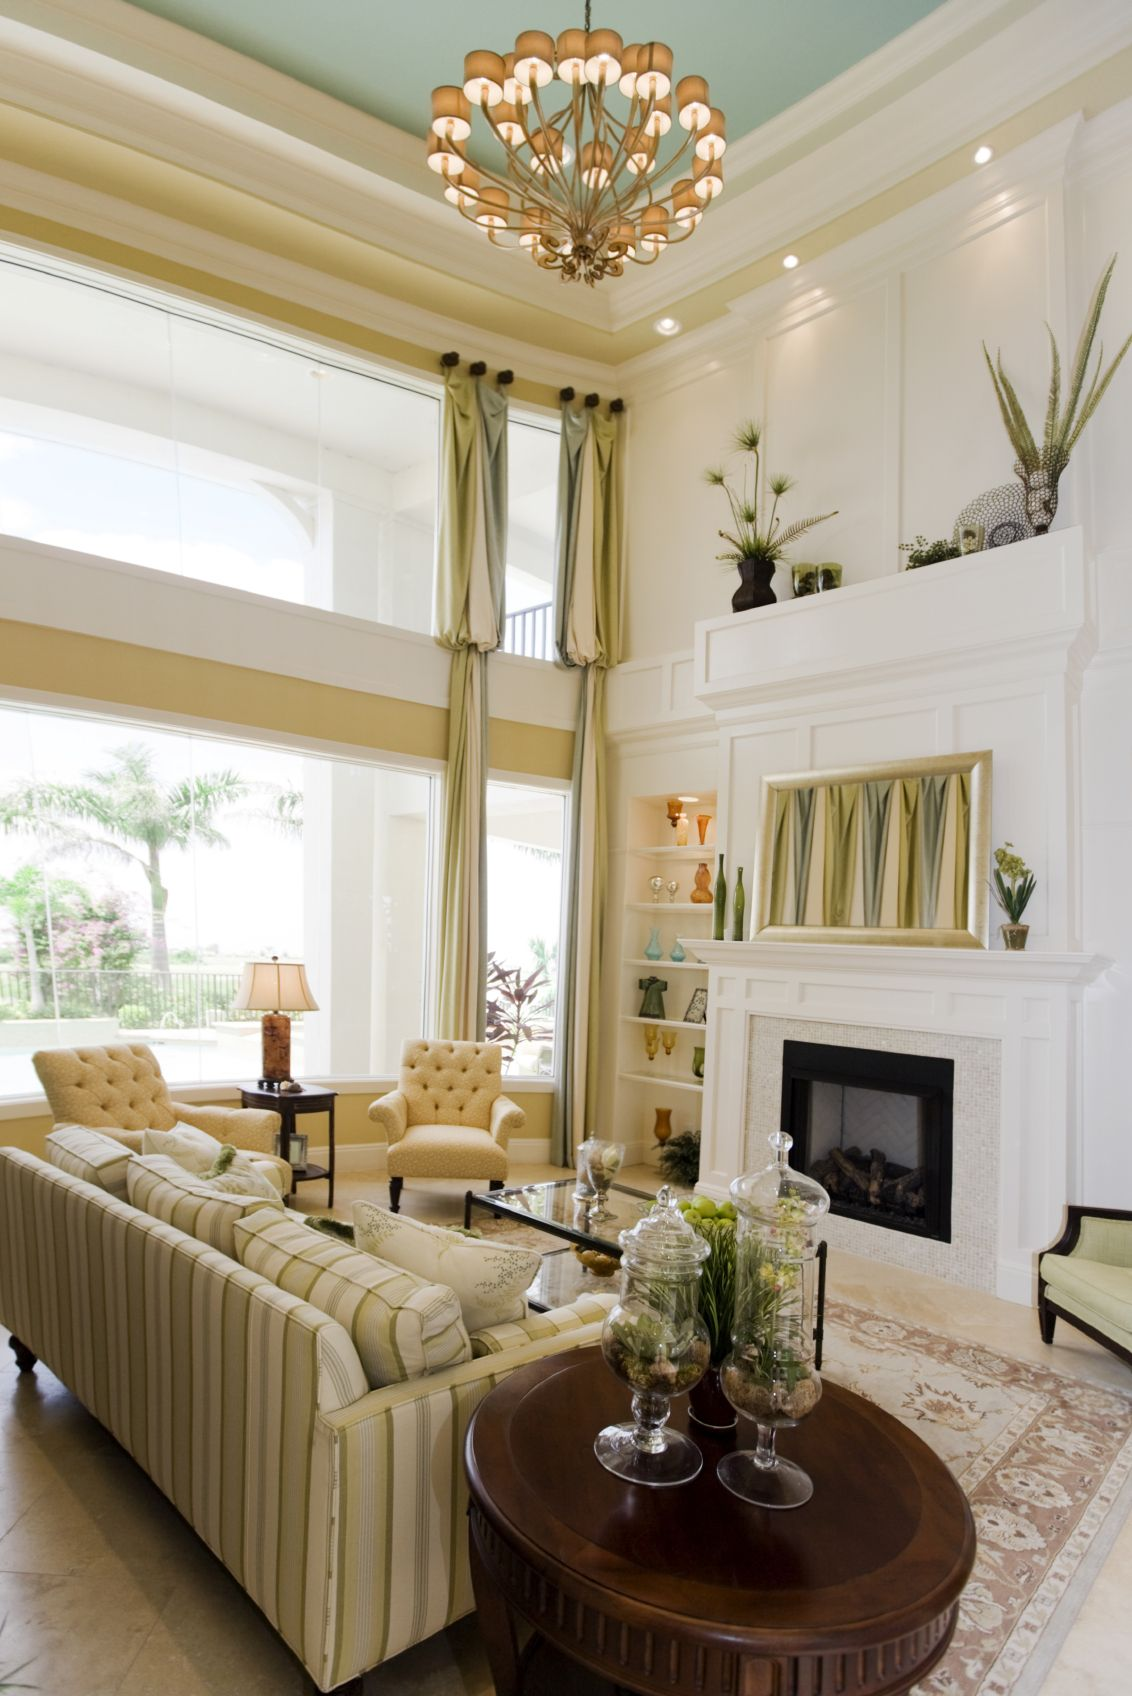 54 living rooms with soaring 2 story cathedral ceilings - Matchstick Tile Bedroom Decor